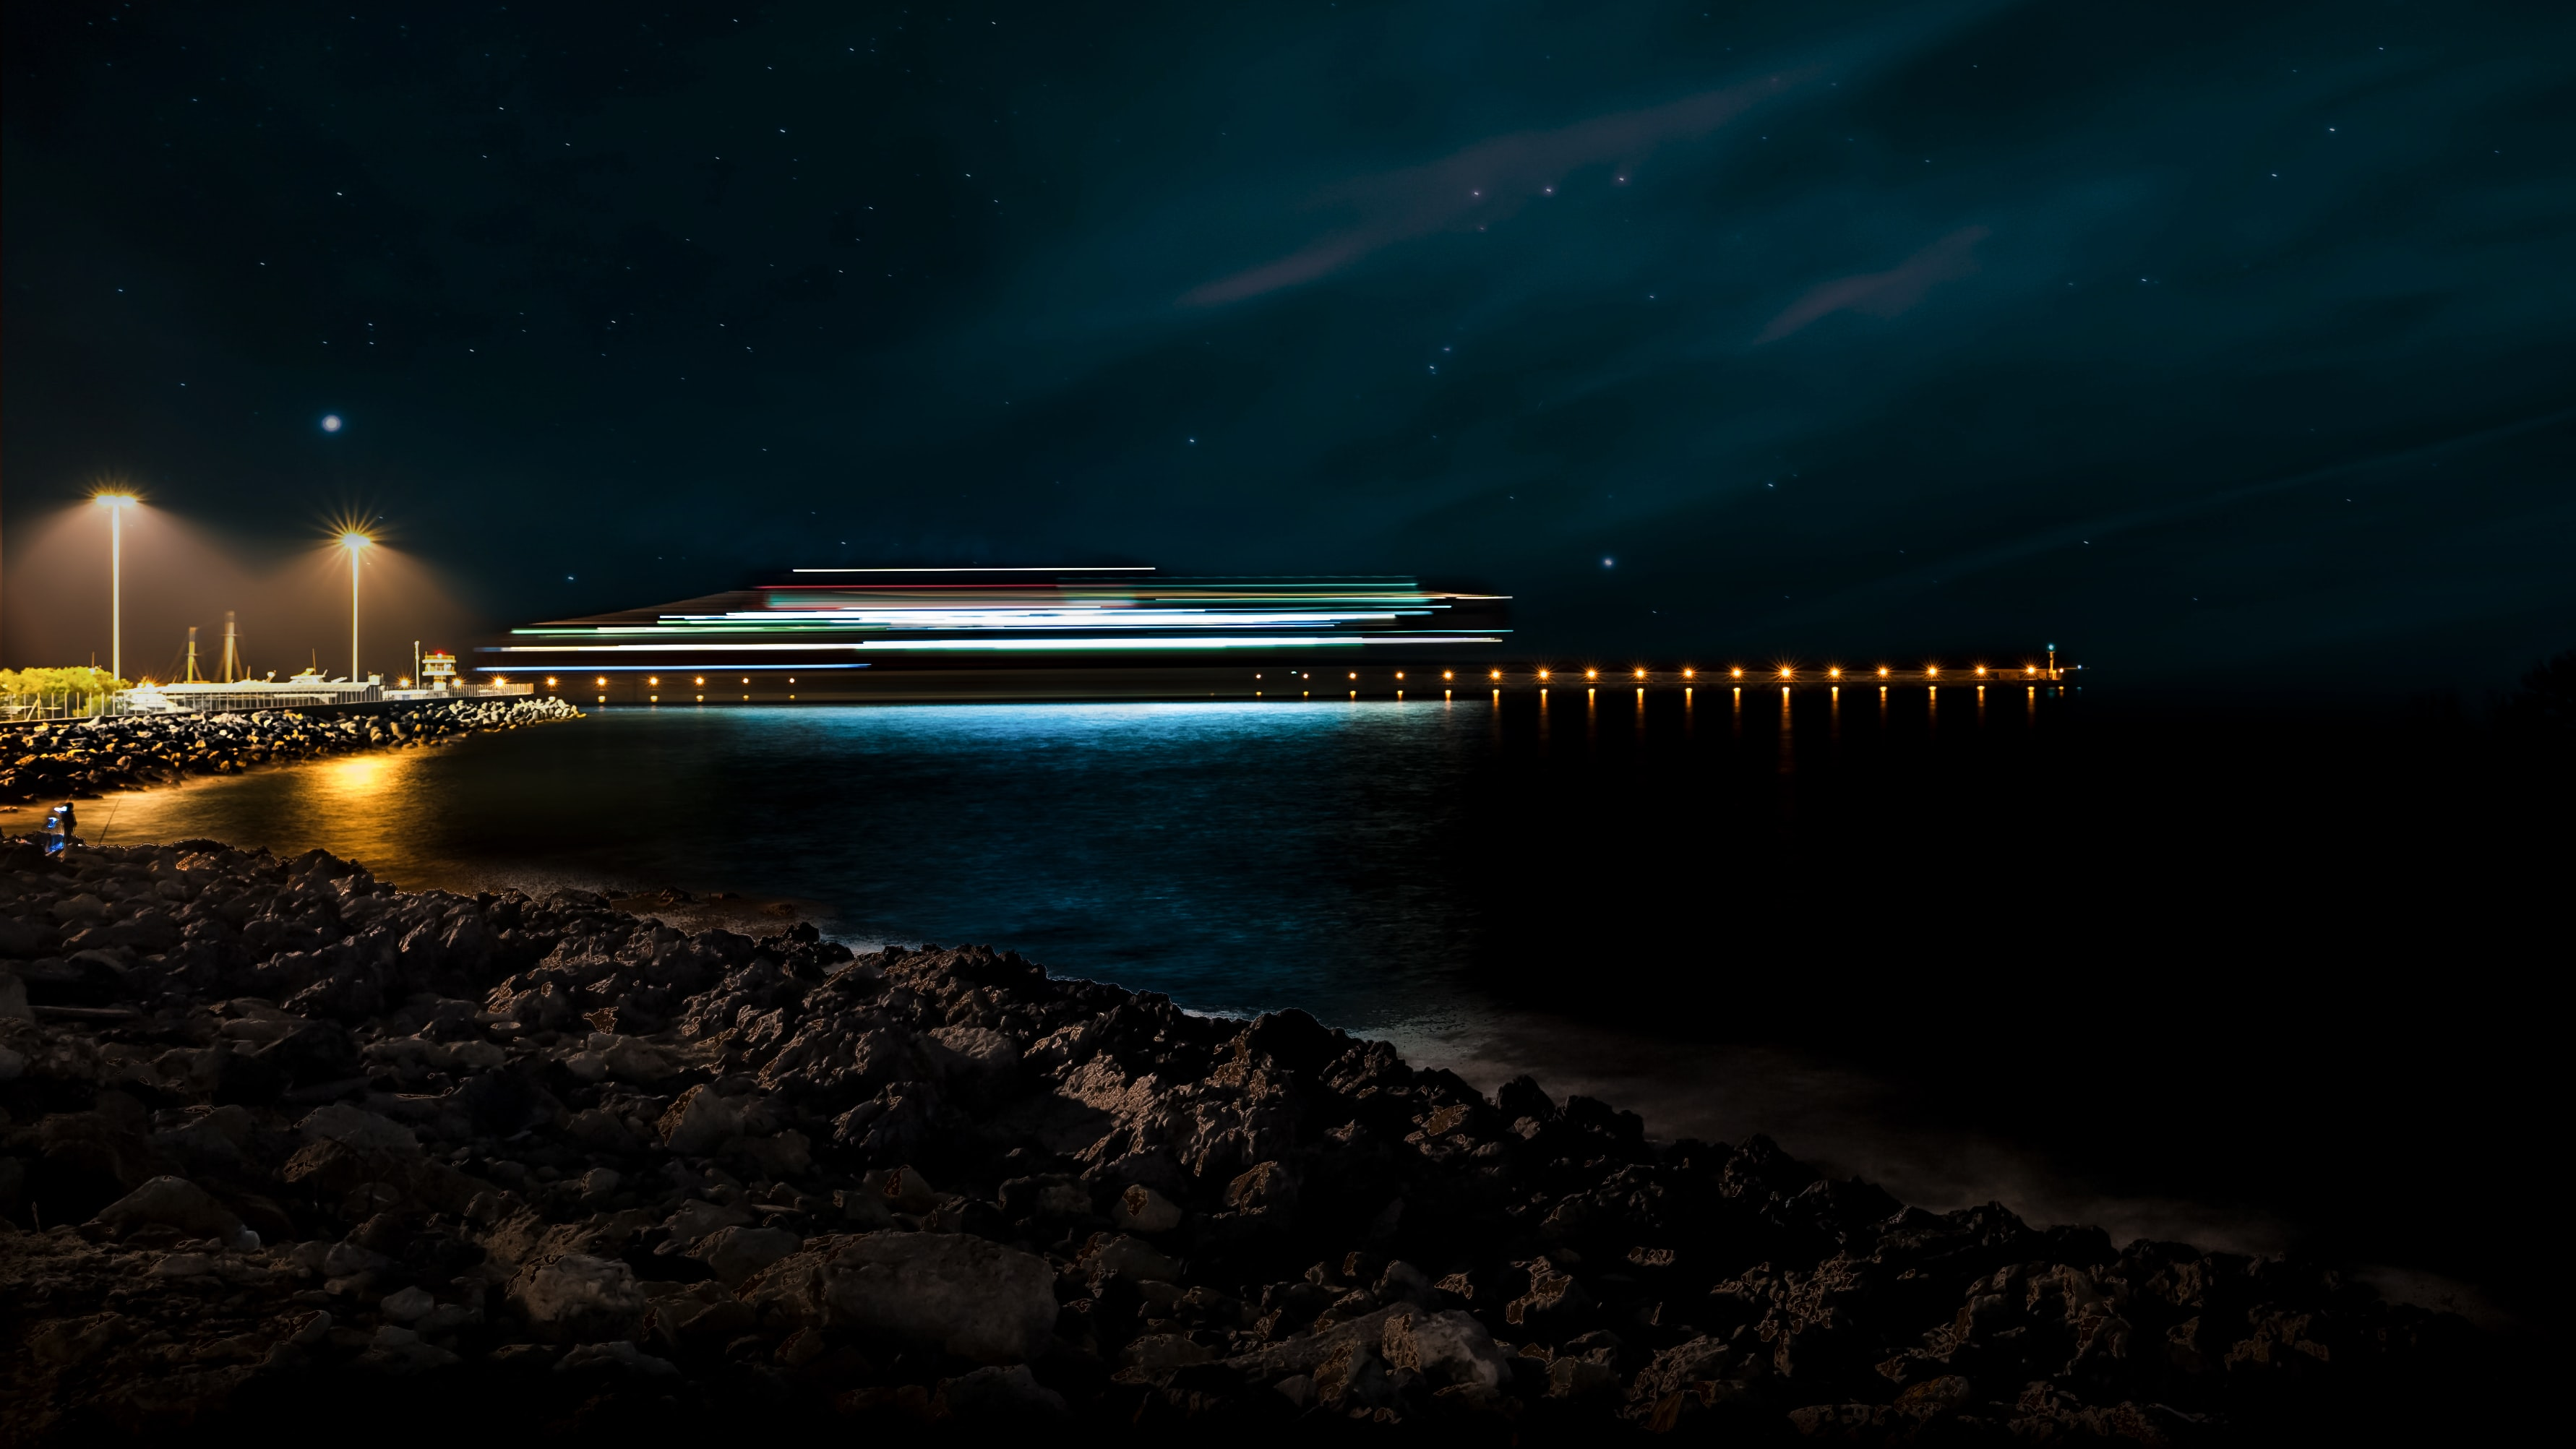 landscape photography of a cruise ship during nighttime